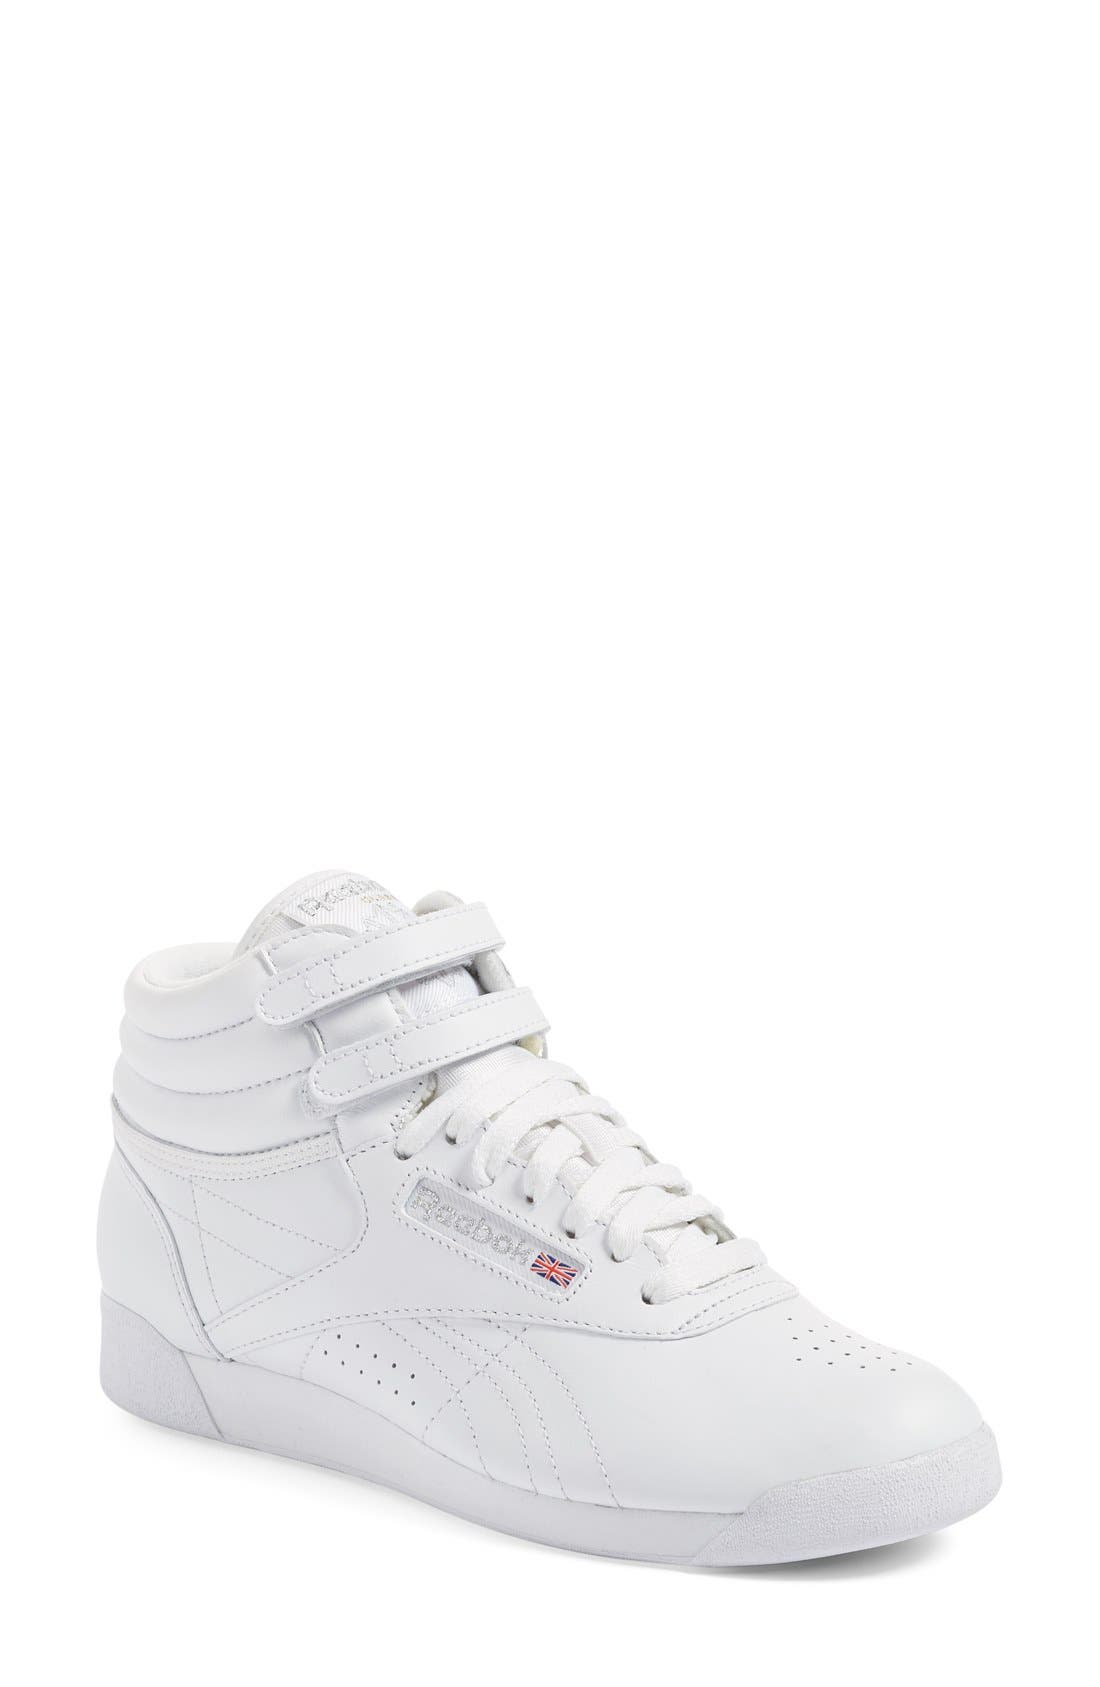 Alternate Image 1 Selected - Reebok 'Freestyle Hi' Sneaker (Women)